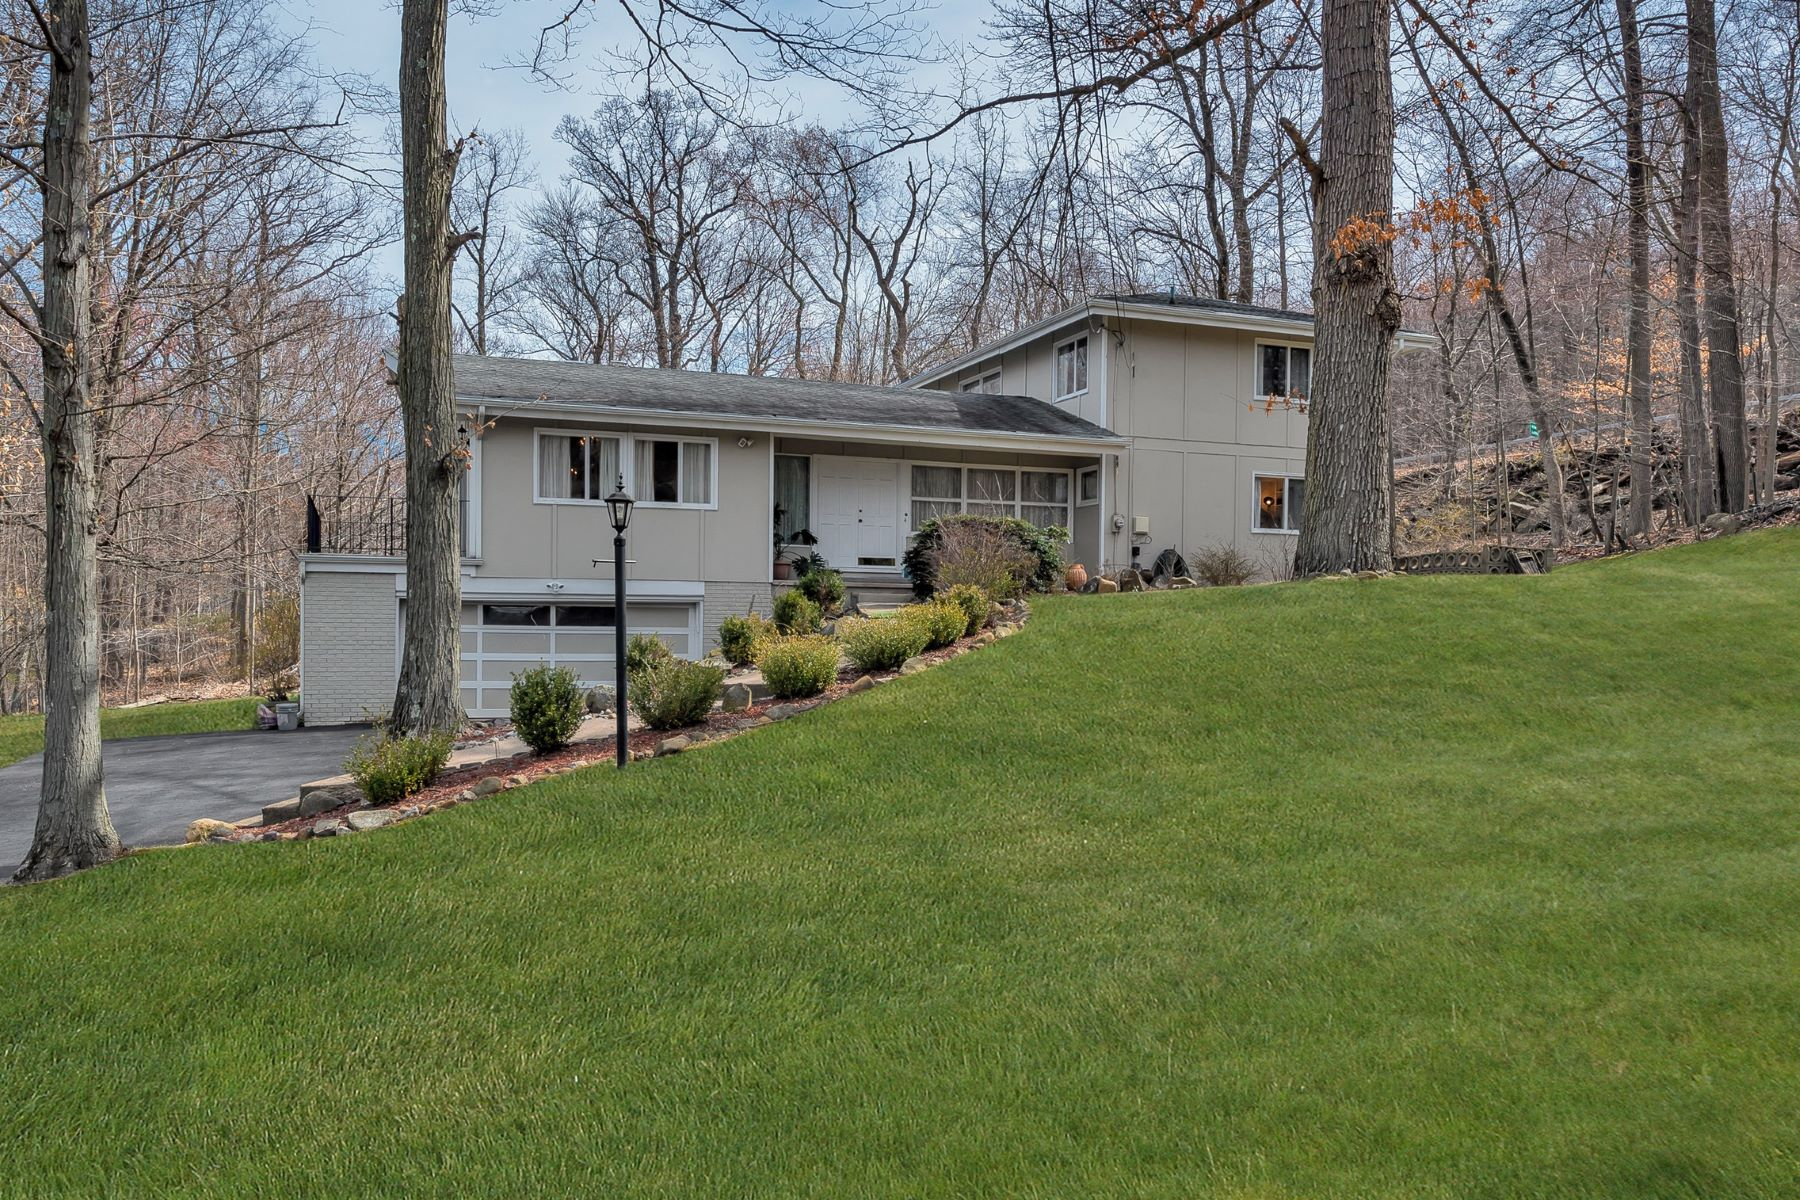 Single Family Home for Sale at Colonial in Perfect Country Setting 4 Century Road Palisades, New York 10964 United States